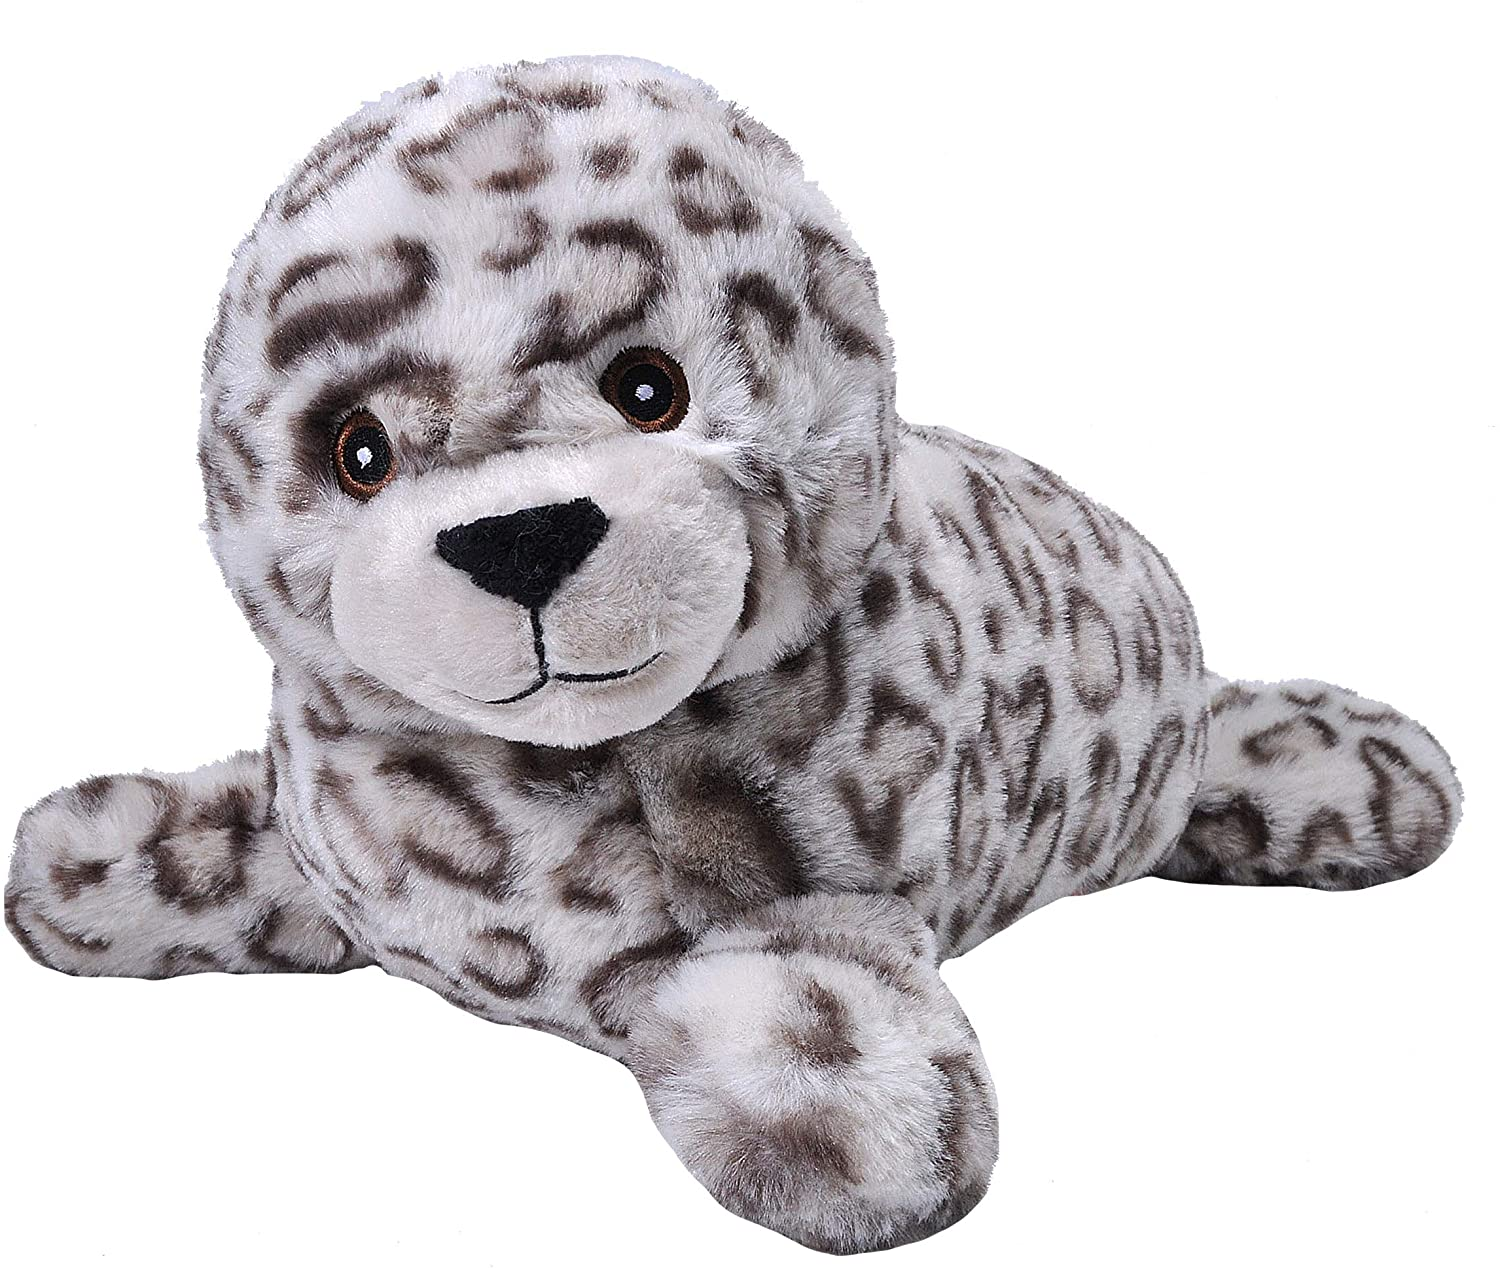 Wild Republic EcoKins Harbor Seal Pup Stuffed Animal 12 inch, Eco Friendly Gifts for Kids, Plush Toy, Handcrafted Using 16 Recycled Plastic Water Bottles